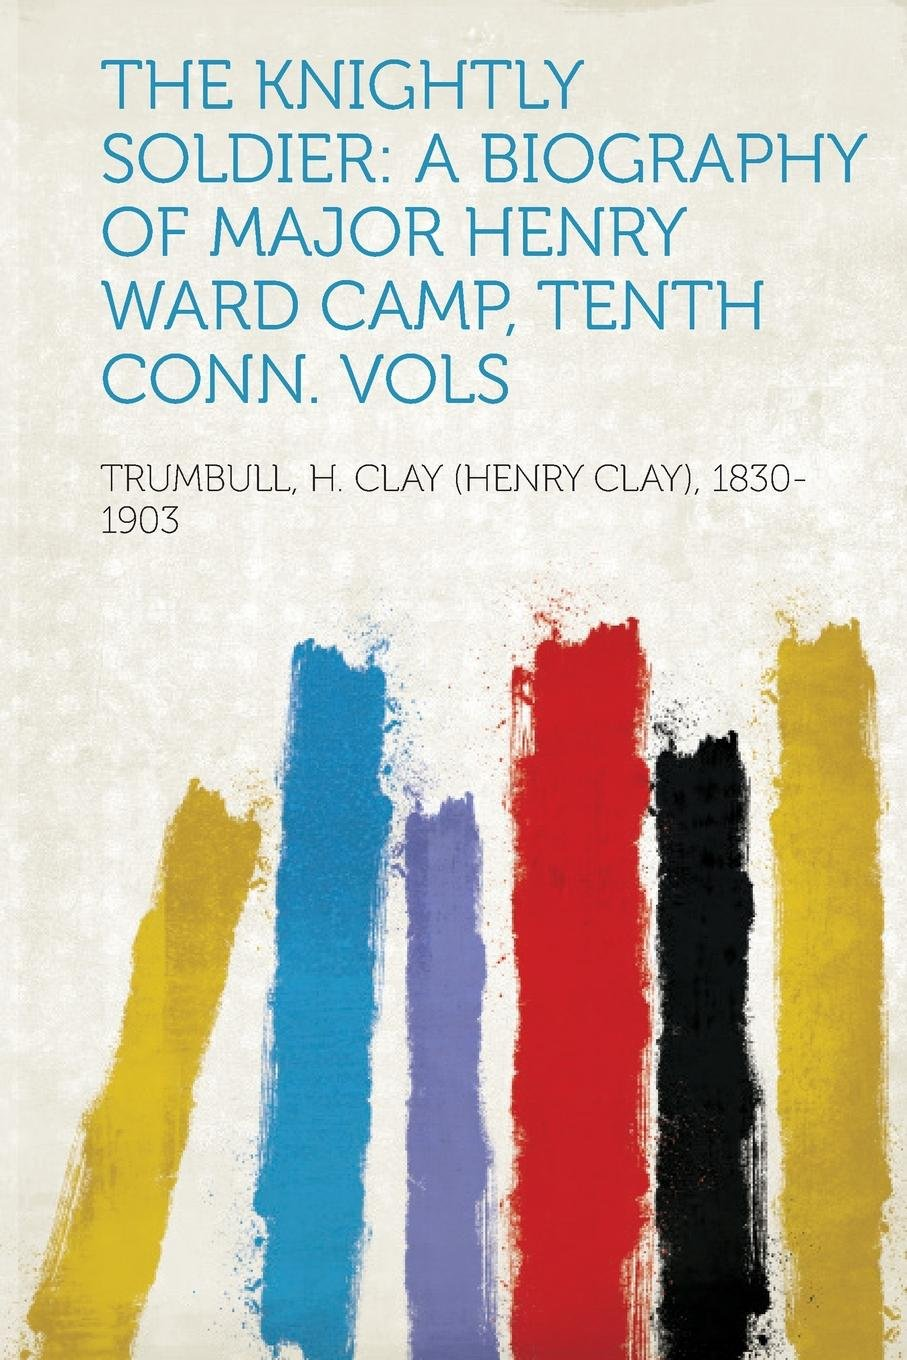 The Knightly Soldier: A Biography of Major Henry Ward Camp, Tenth Conn. Vols ebook